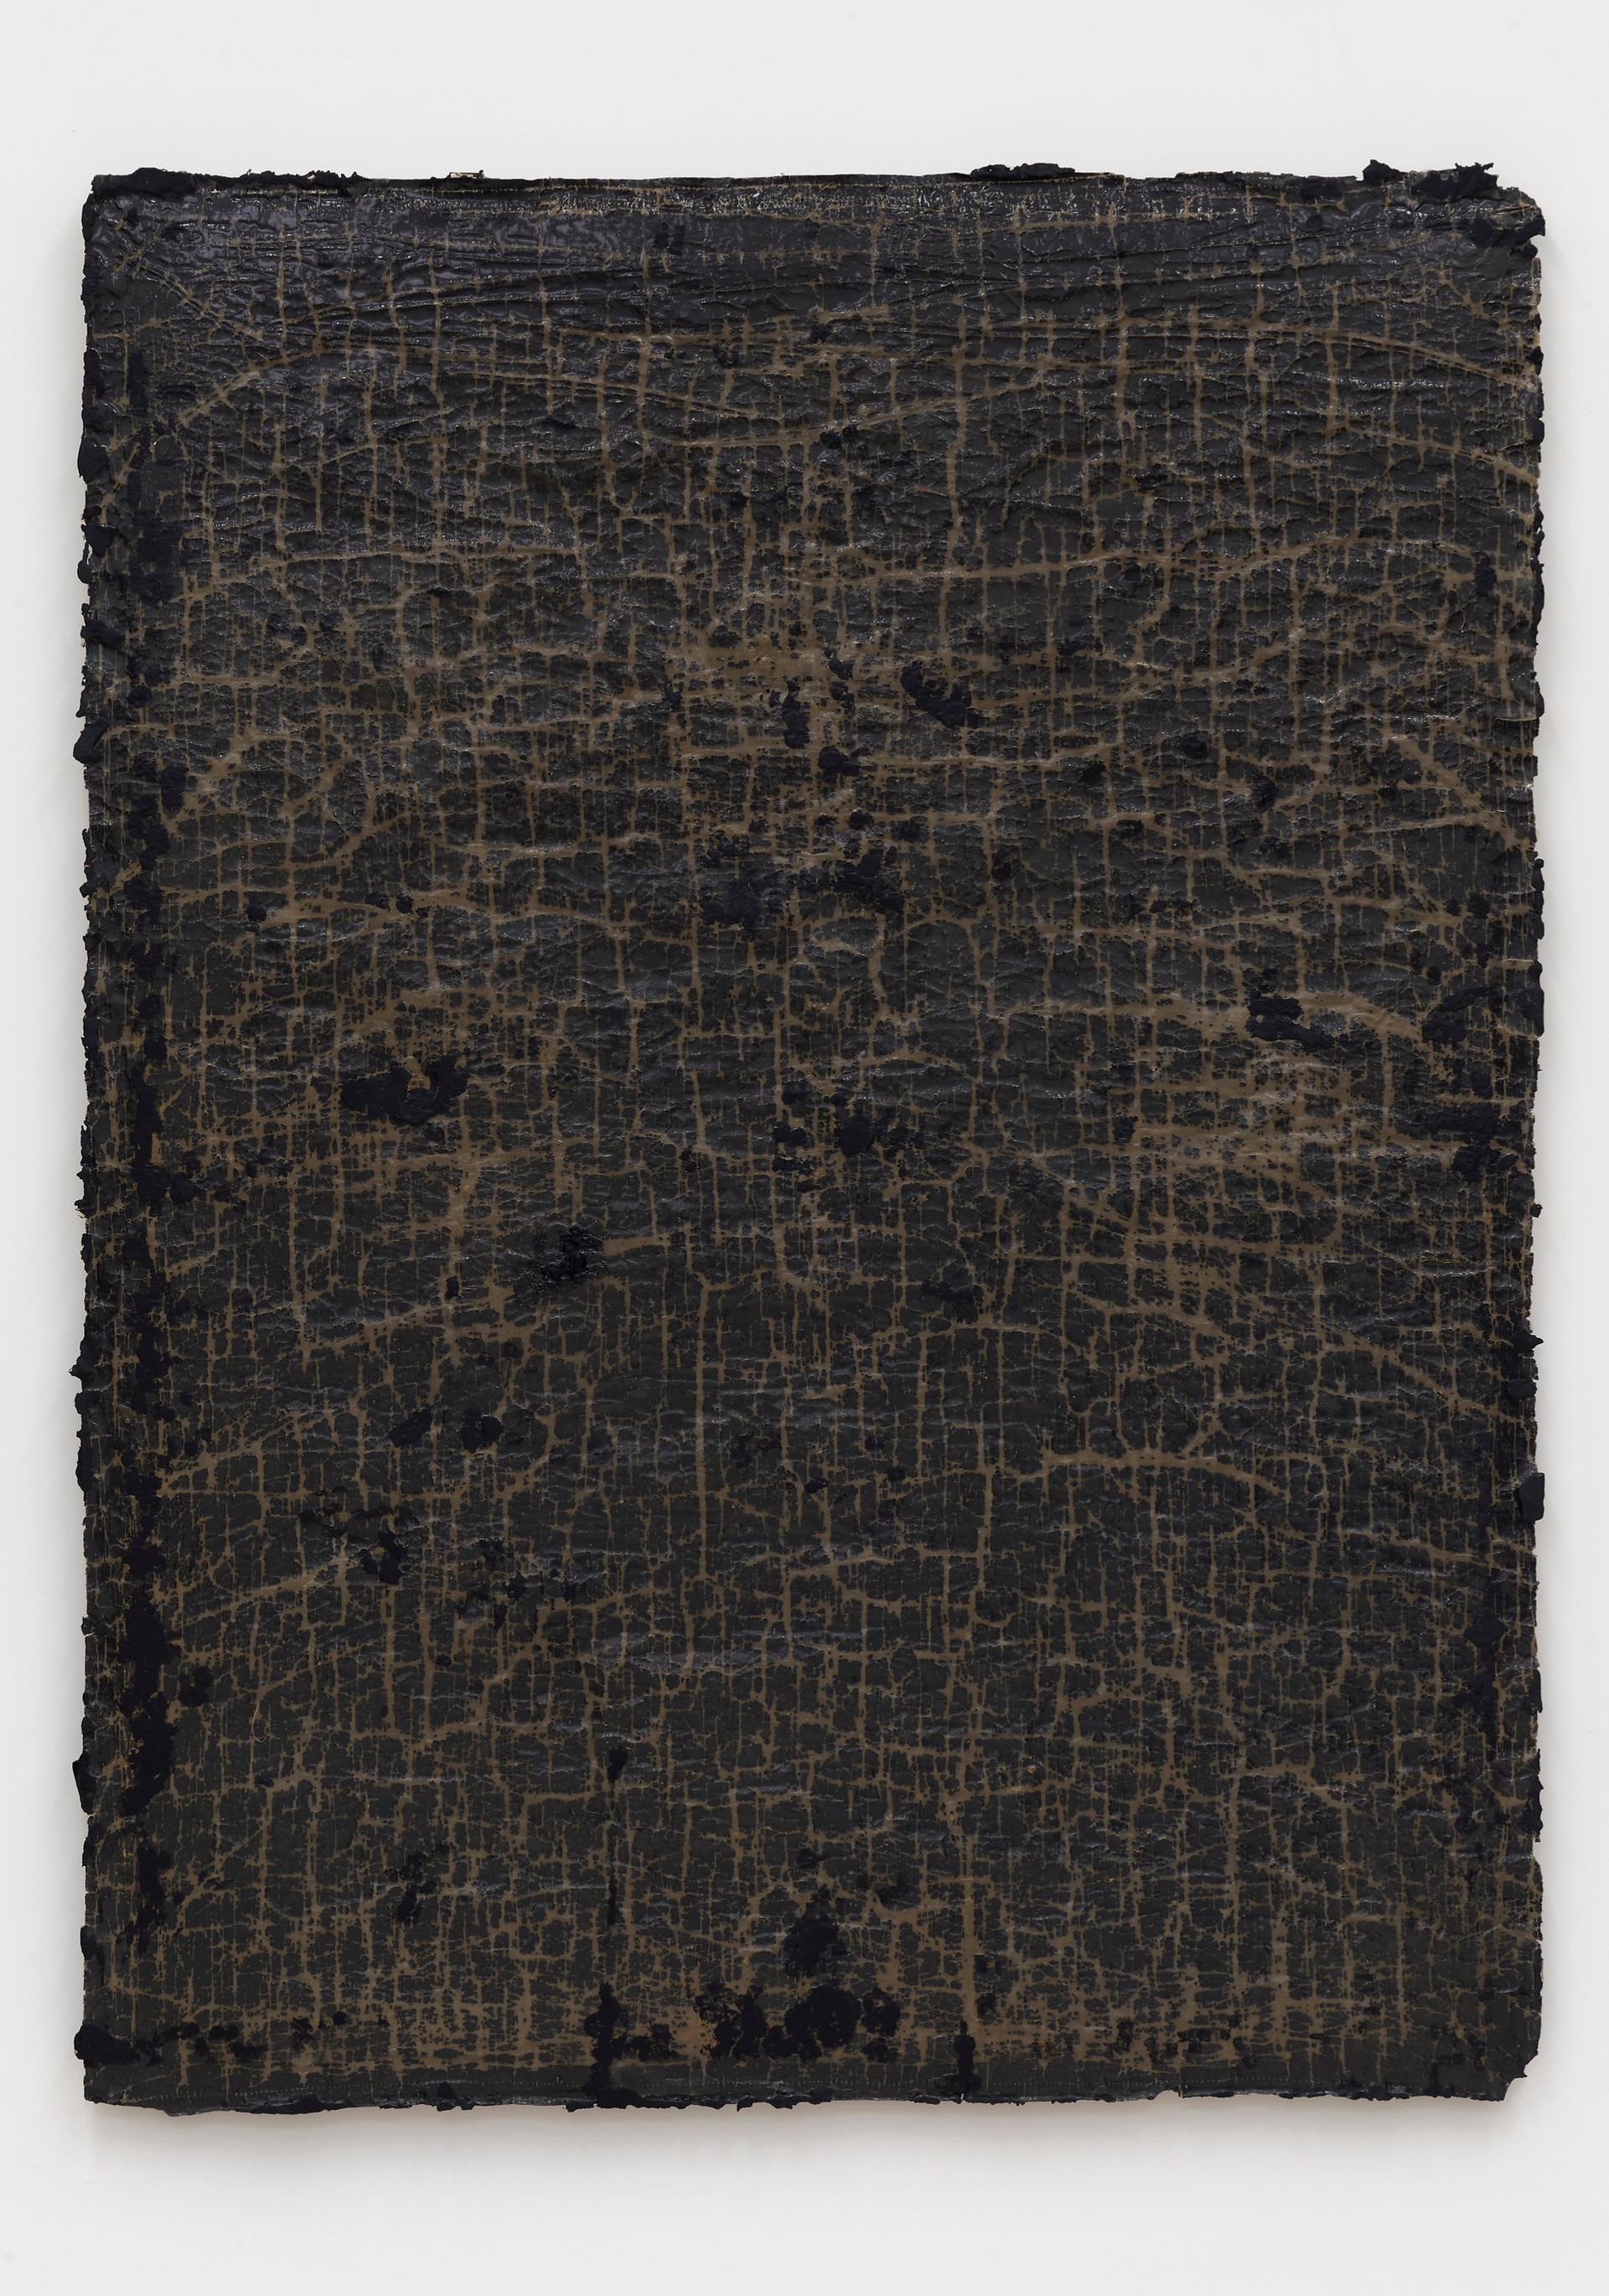 Helmut Lang  network #1, 2018  Cotton, wax, resin, and tar on canvas  68 1/2 x 52 x 1 1/2 inches